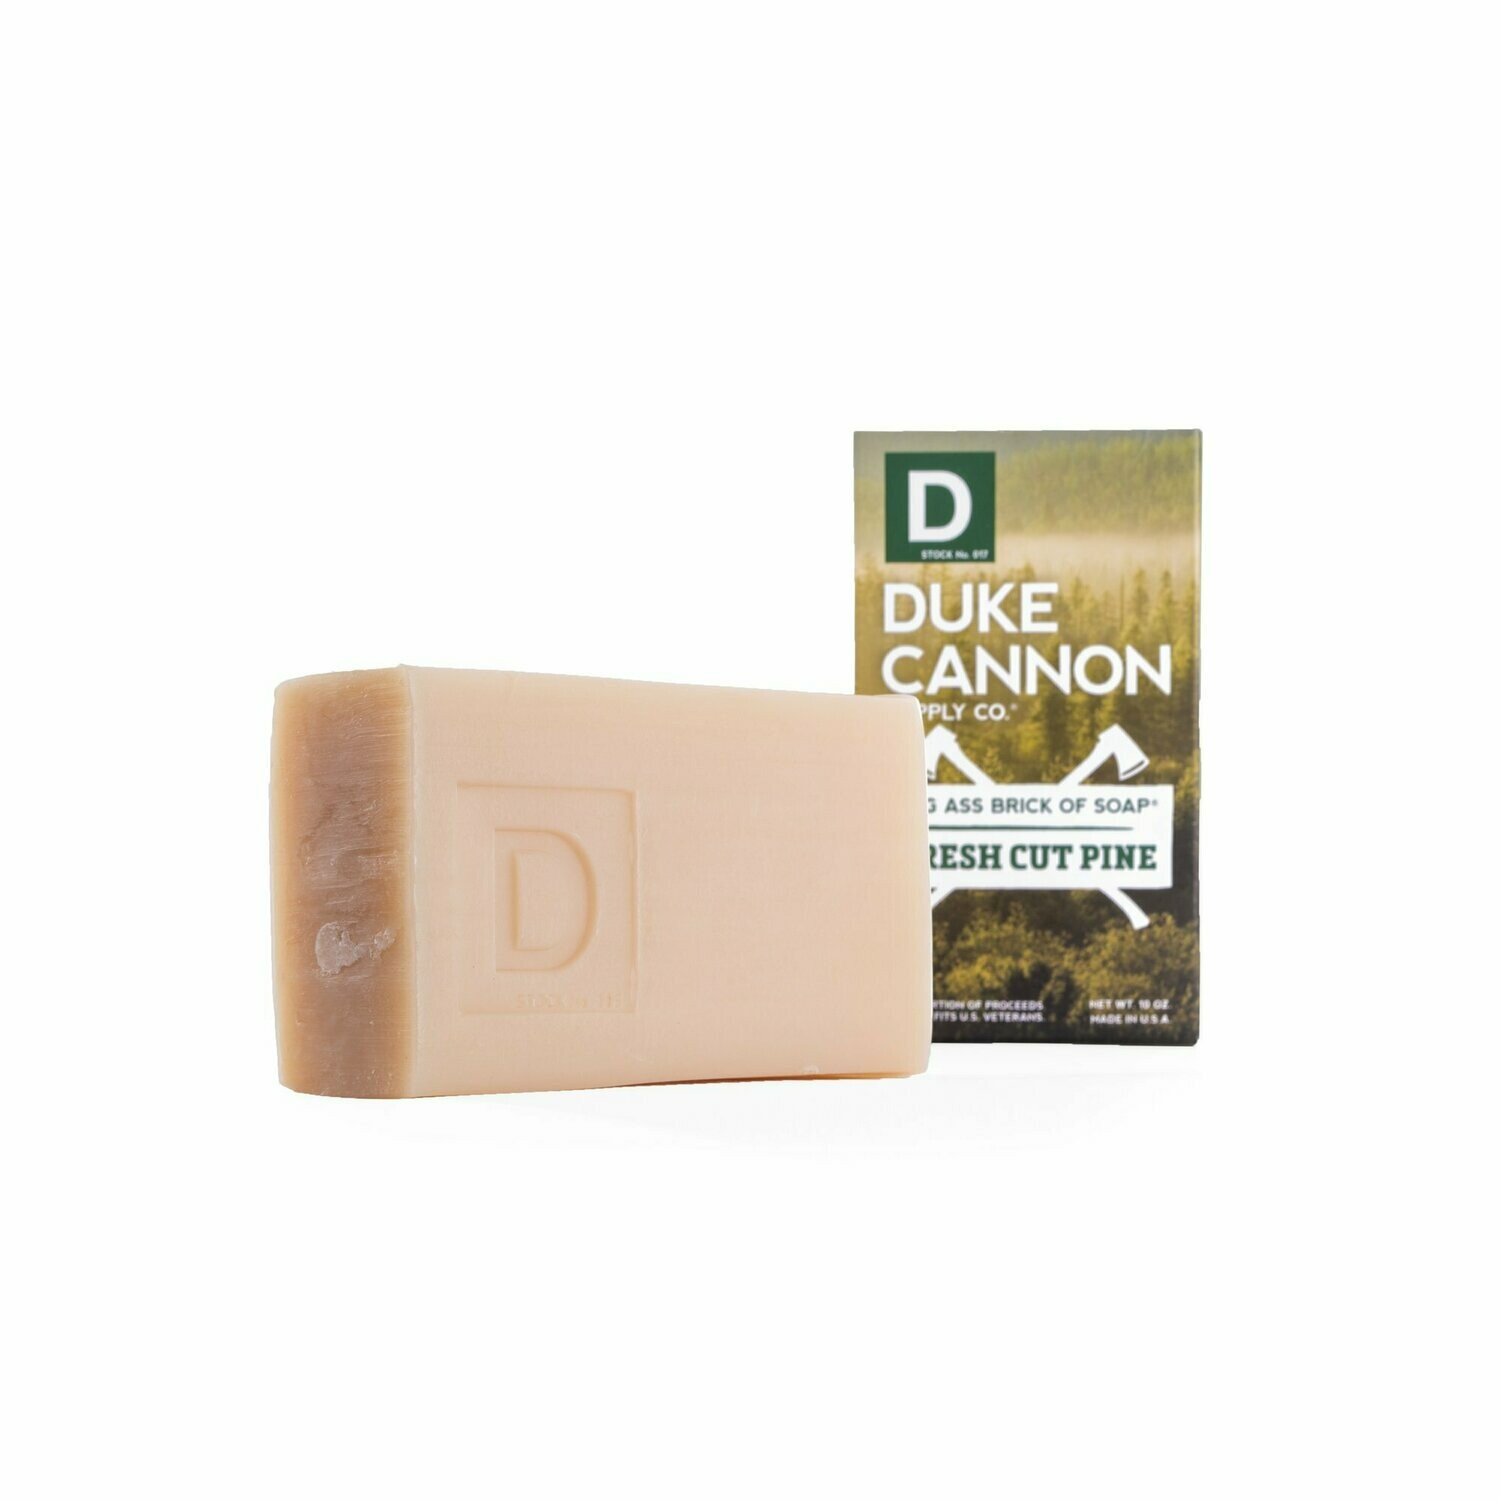 Fresh Cut Pine Soap By Duke Cannon